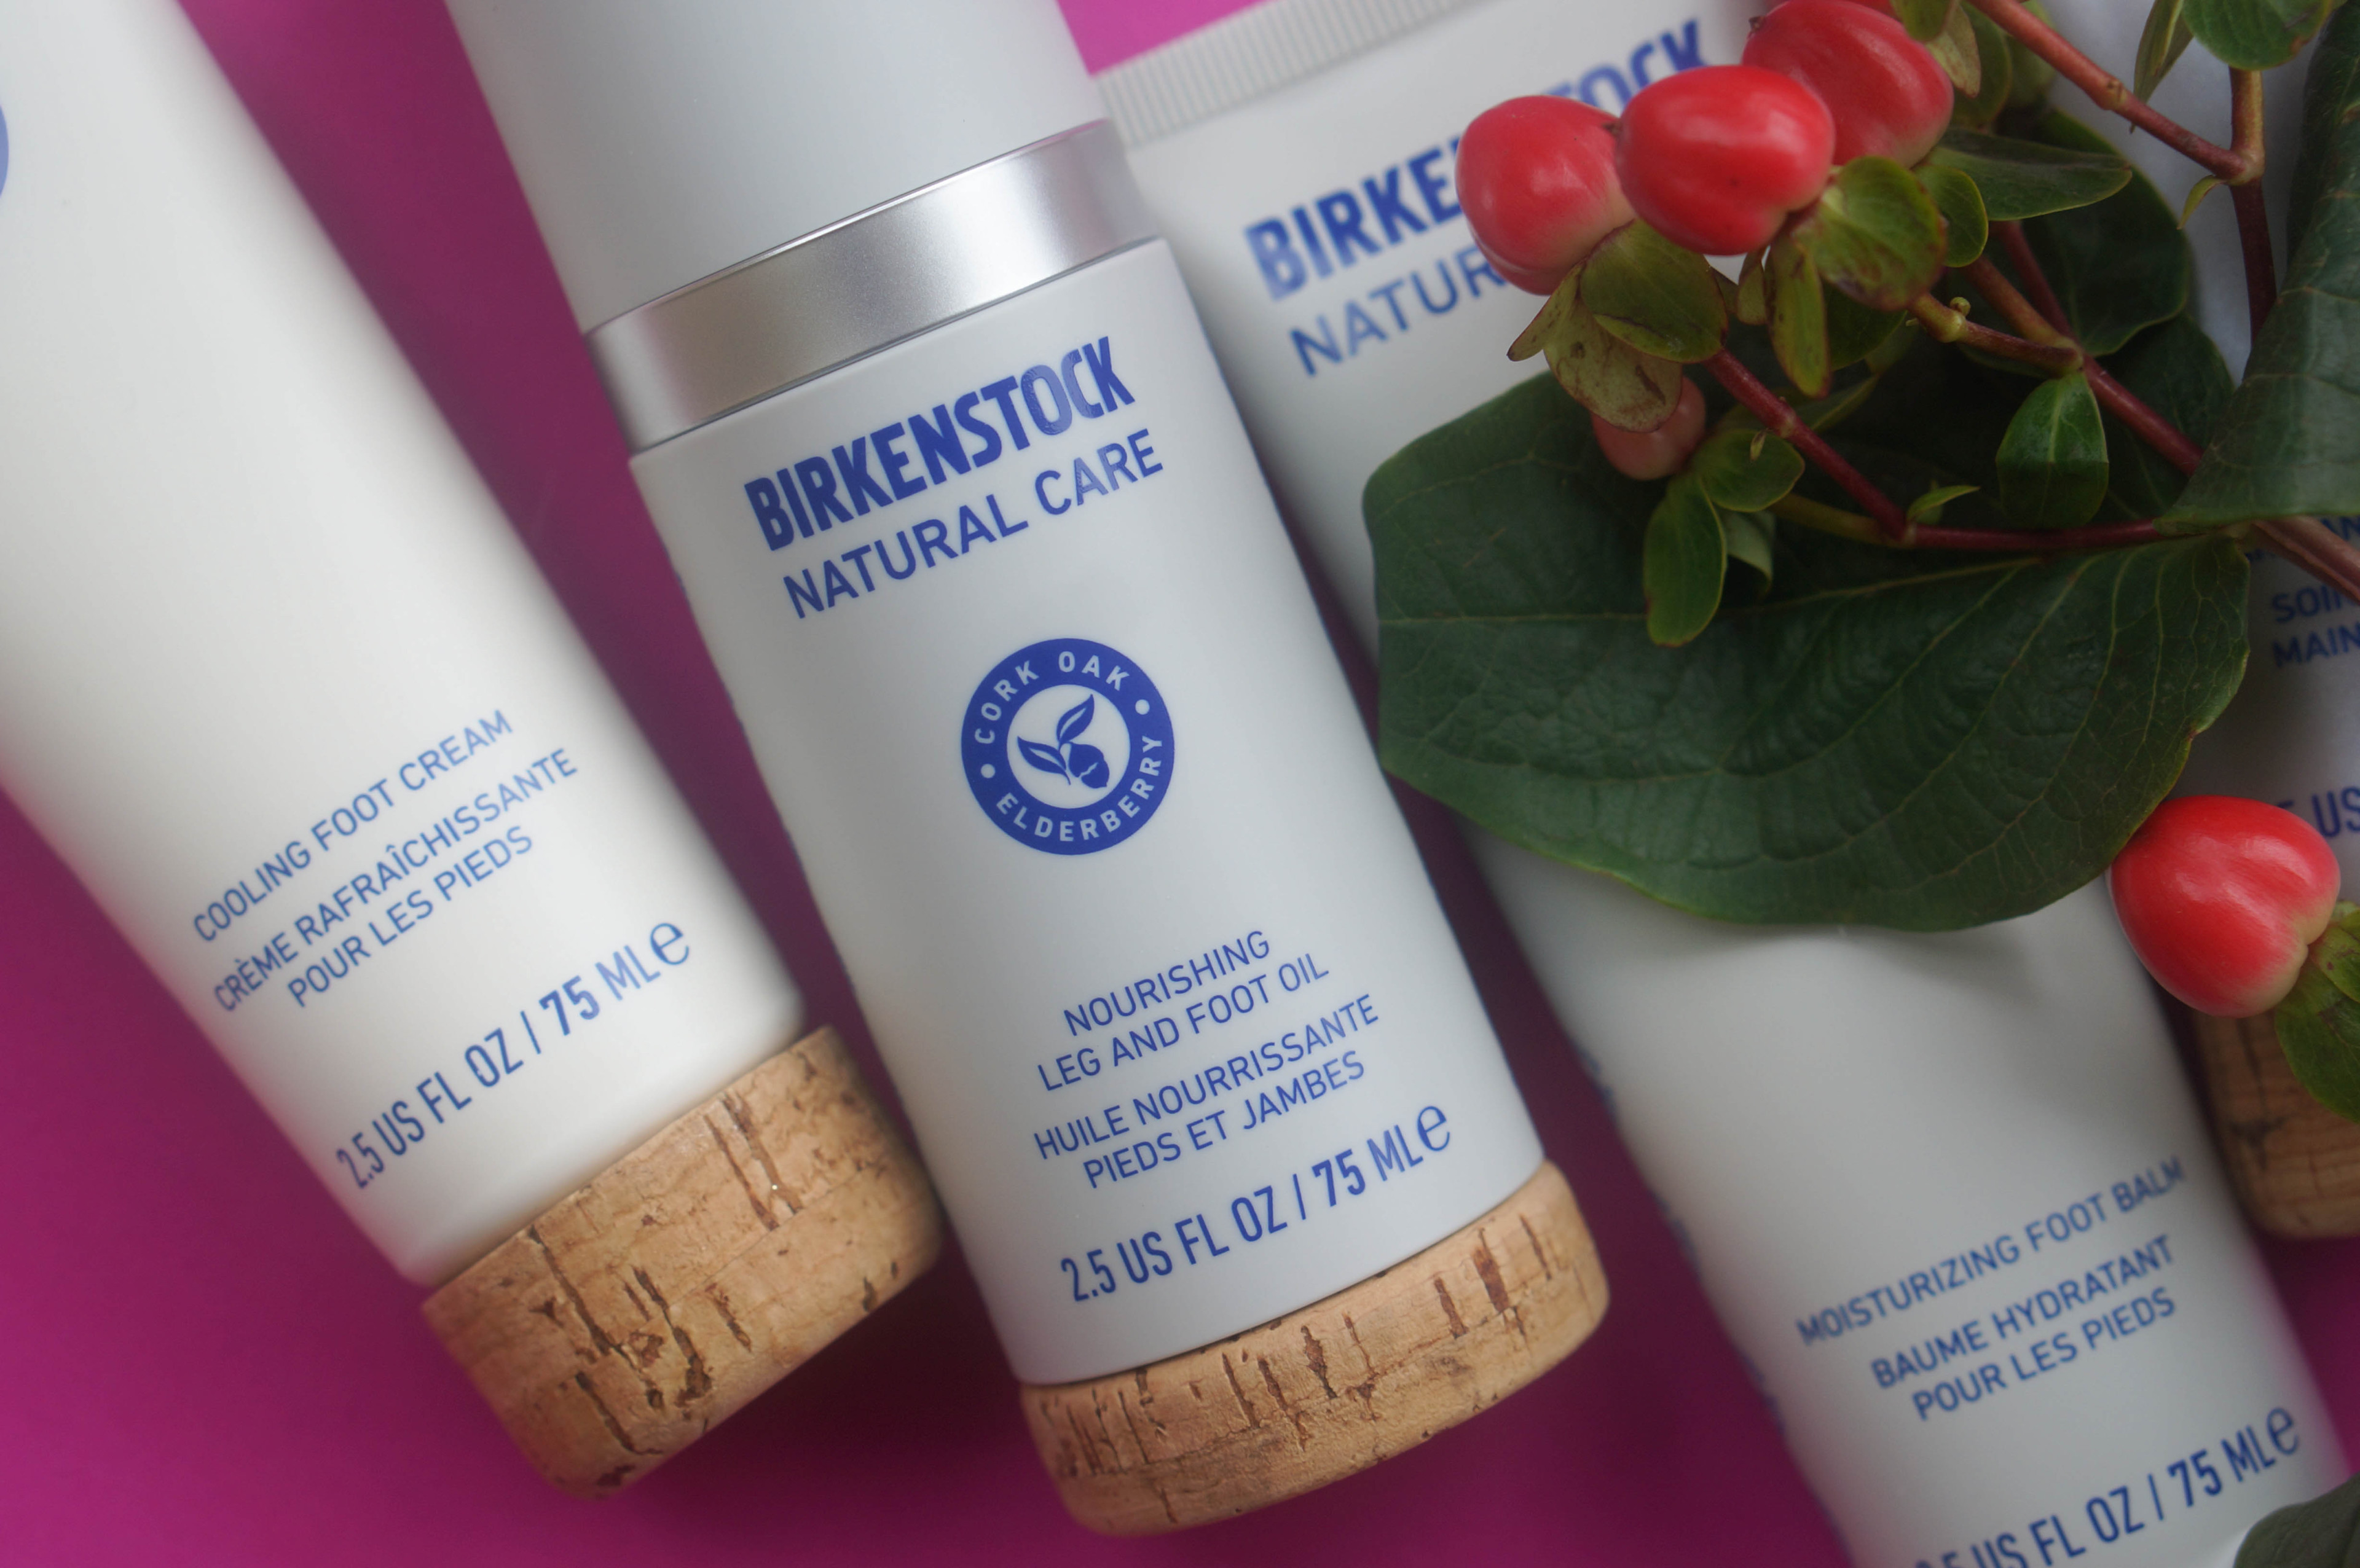 birkenstock-natural-care-3